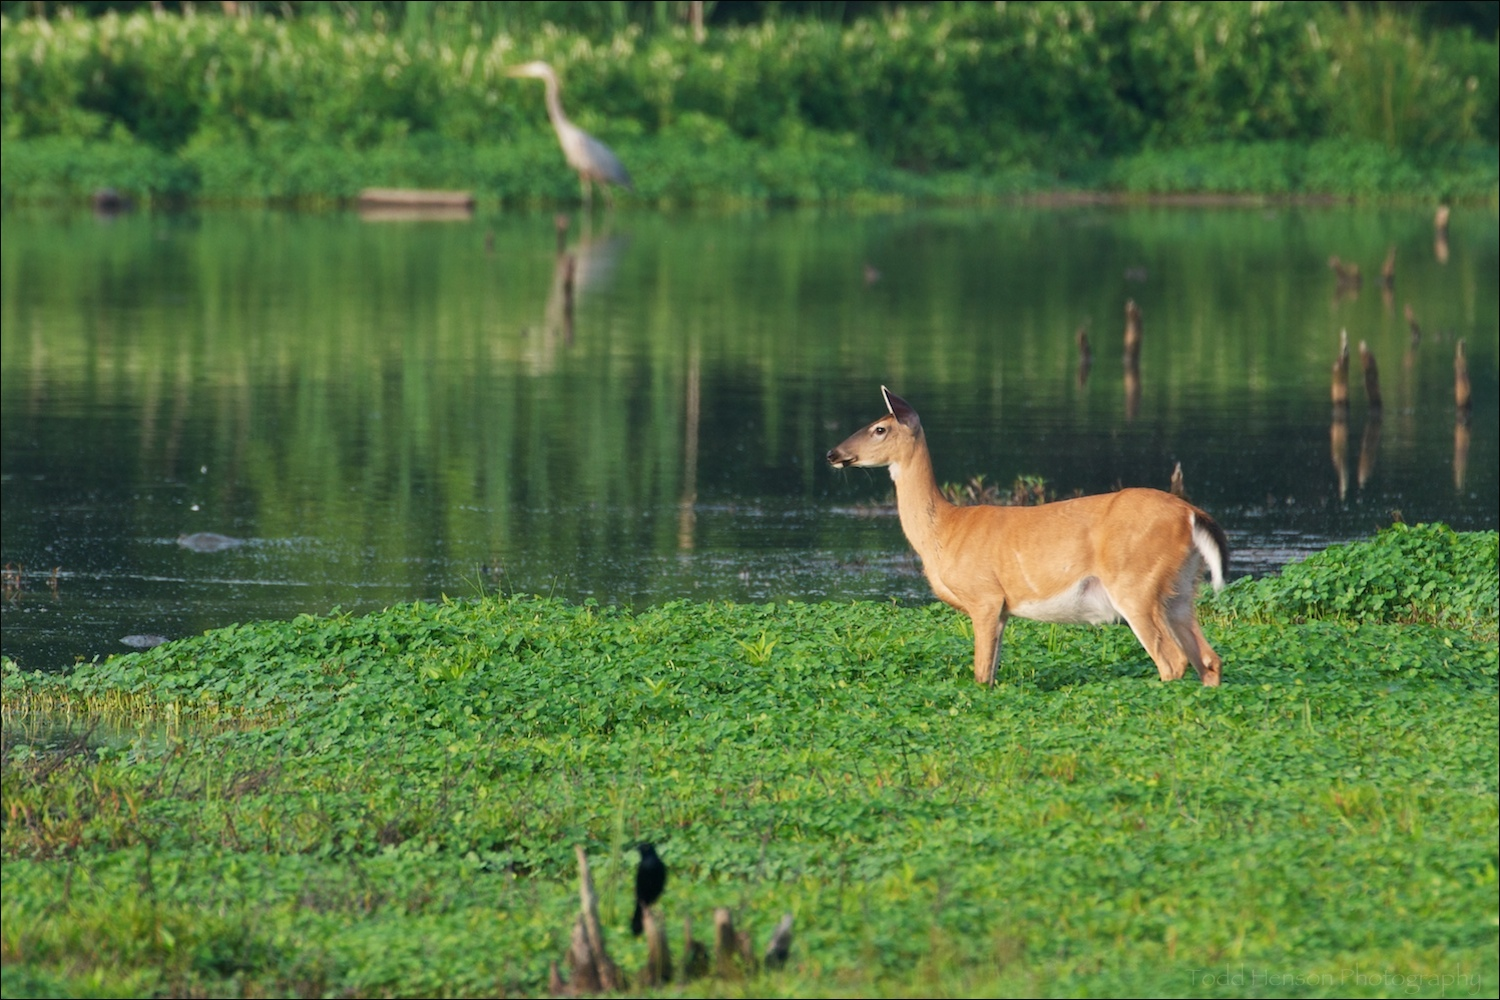 White-tailed deer at edge of wetlands, with black bird in foreground and great blue heron in background